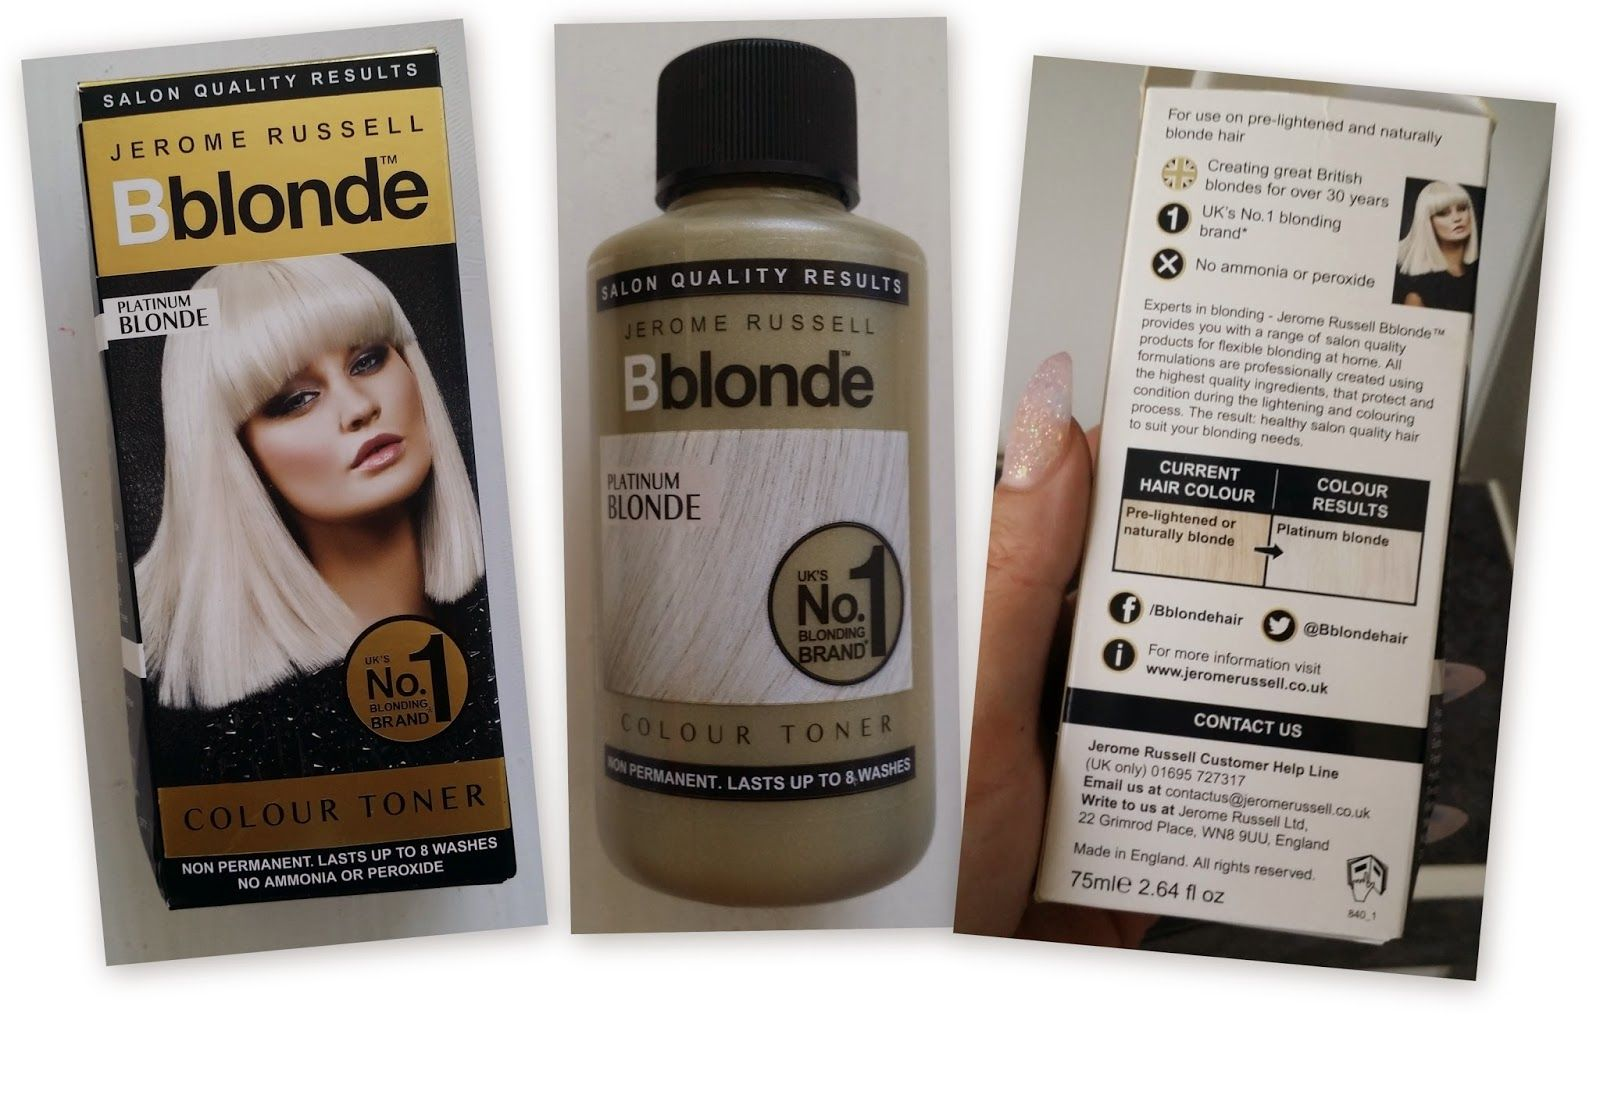 Jerome Russell Bblonde Platinum Blonde Colour Toner Review And A